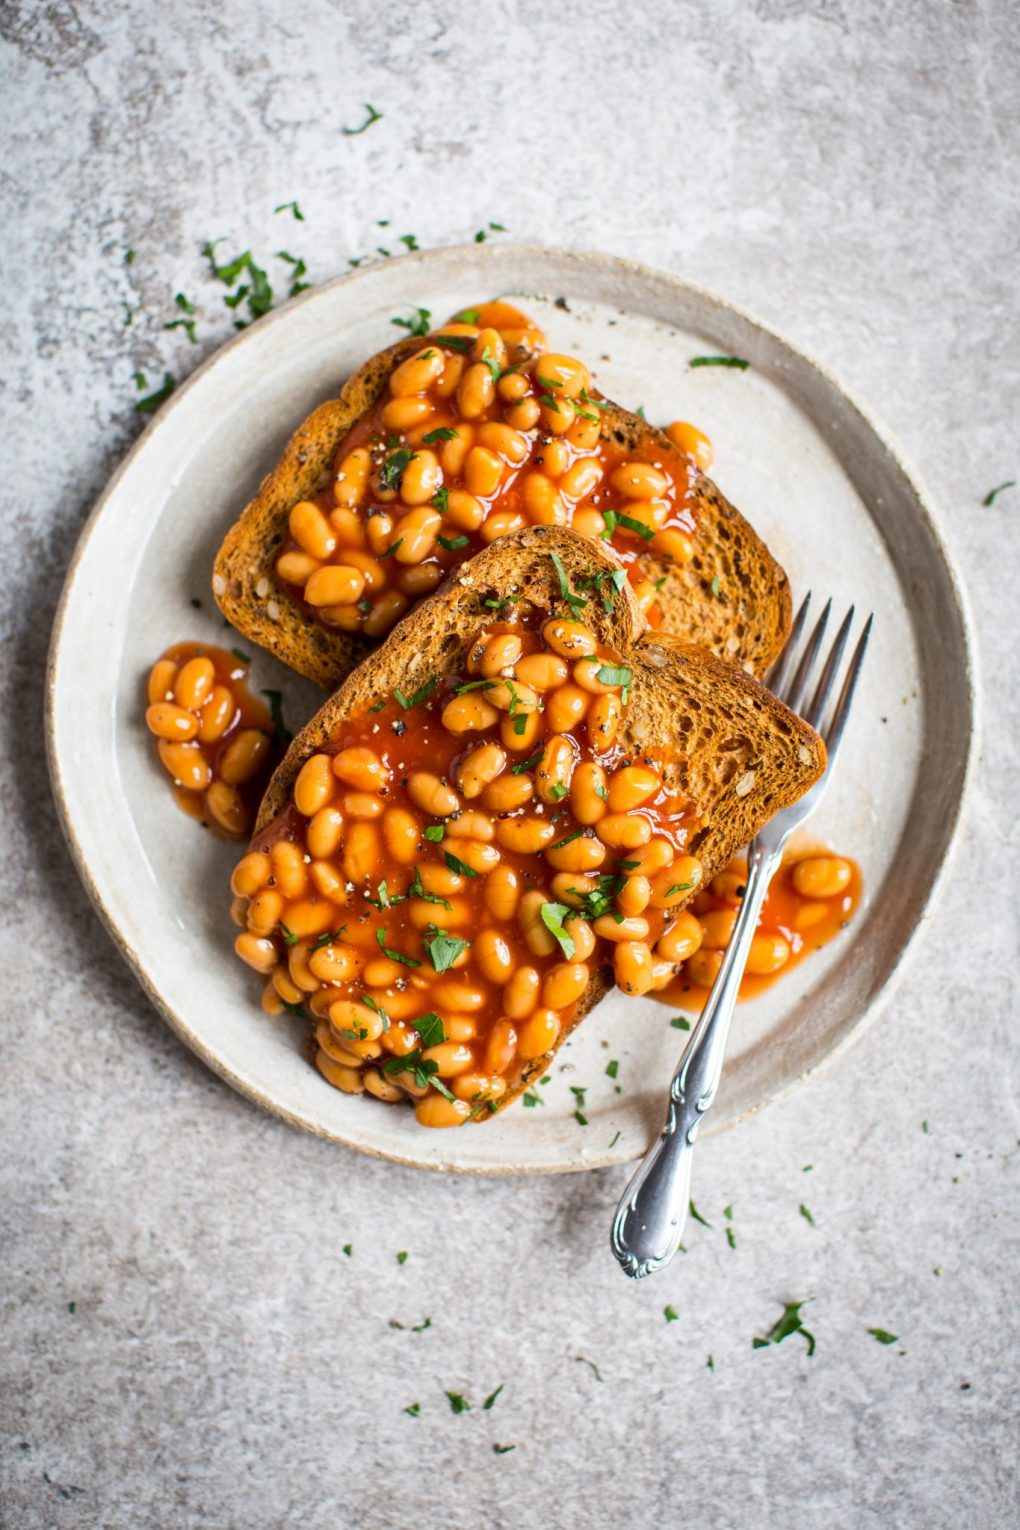 Promise Gluten Free High Protein Dinner Beans on toast